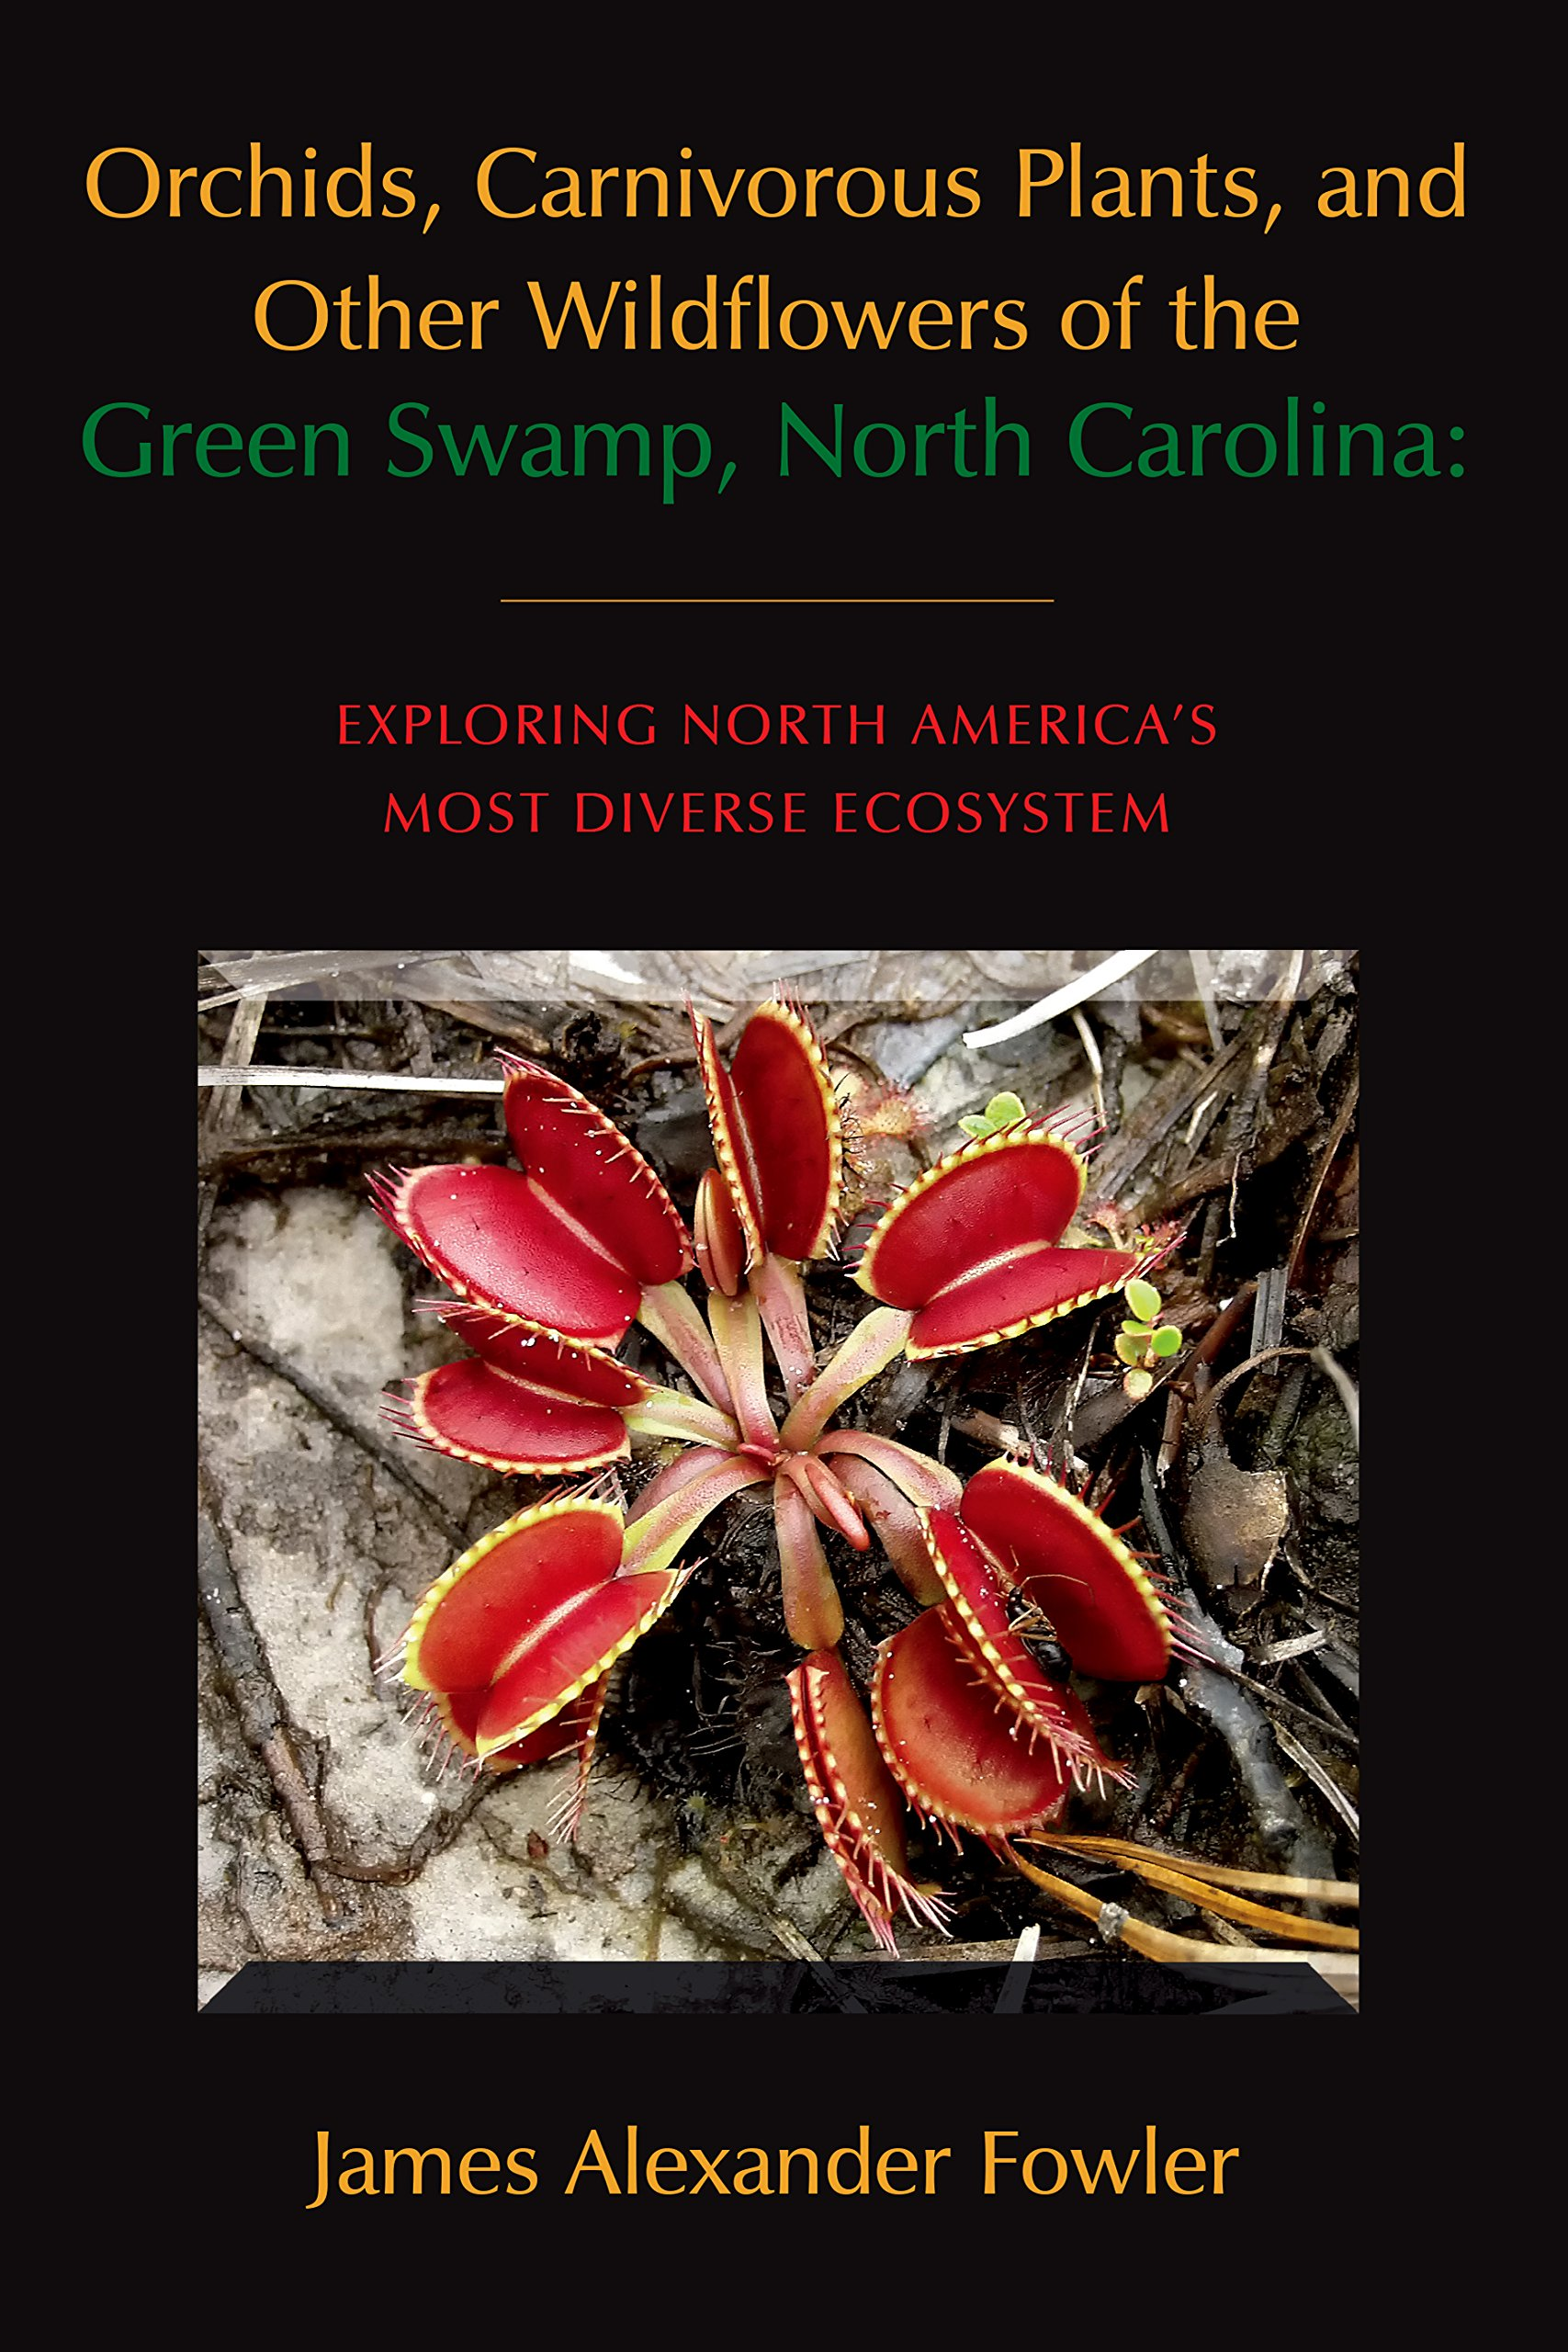 Orchids, Carnivorous Plants, and Other Wildflowers of the Green Swamp,  North Carolina: James Alexander Fowler: 9780990915409: Amazon.com: Books